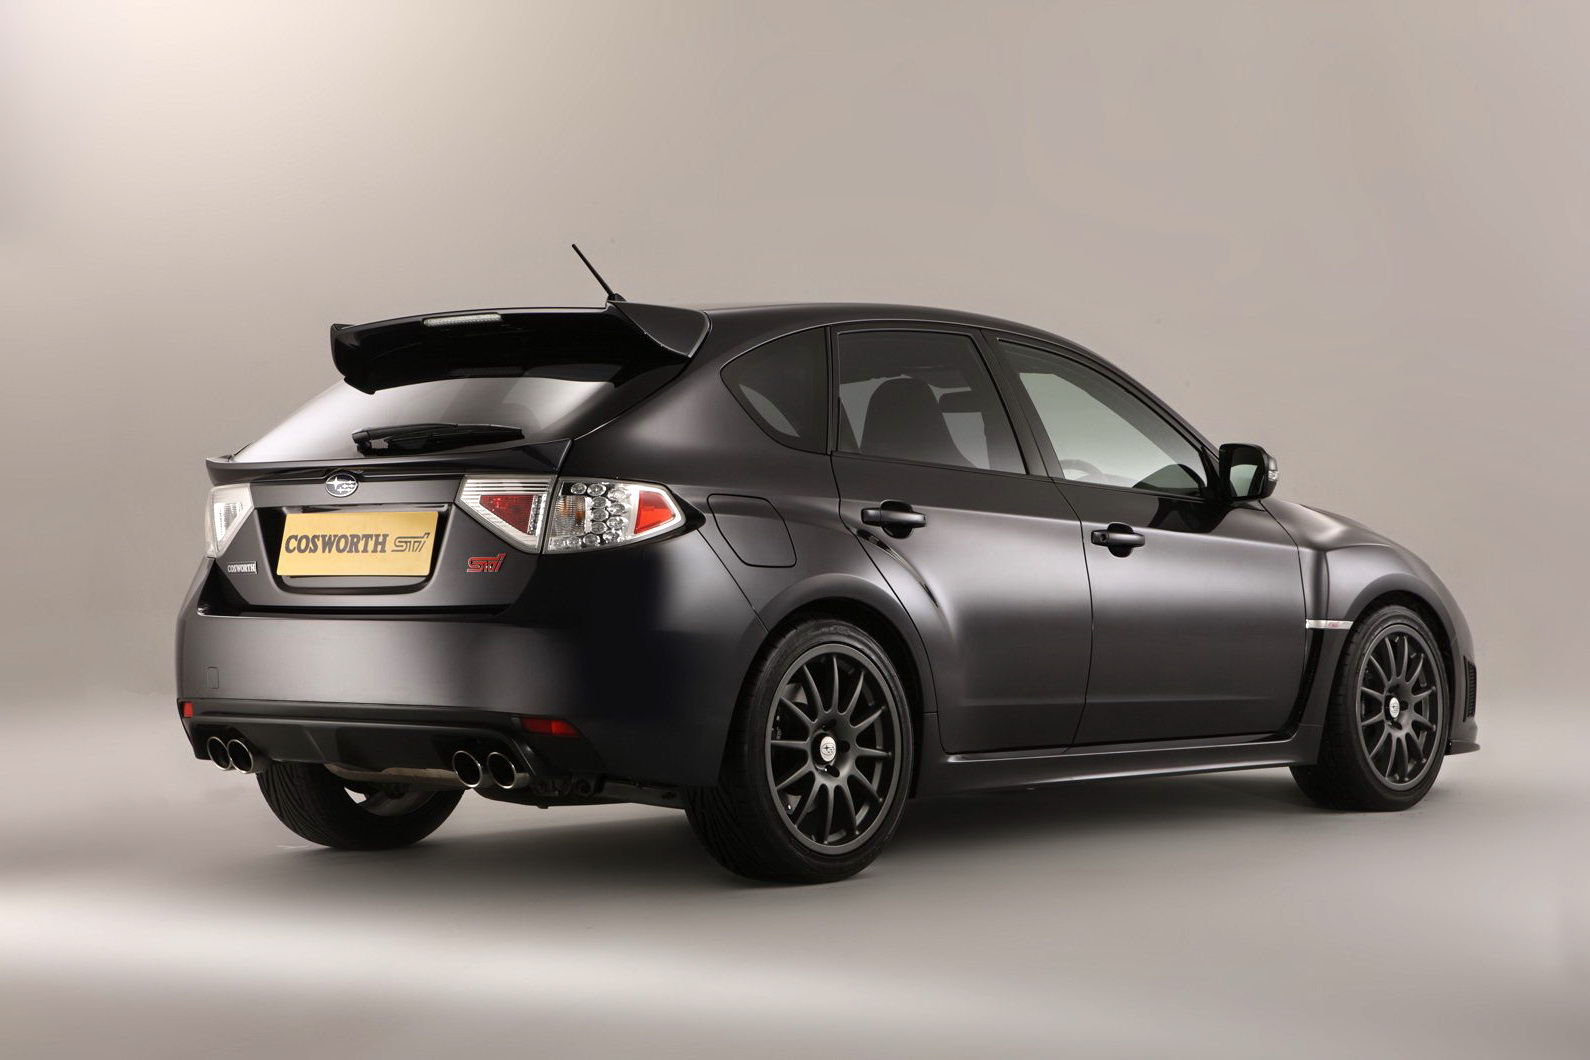 Carscoops